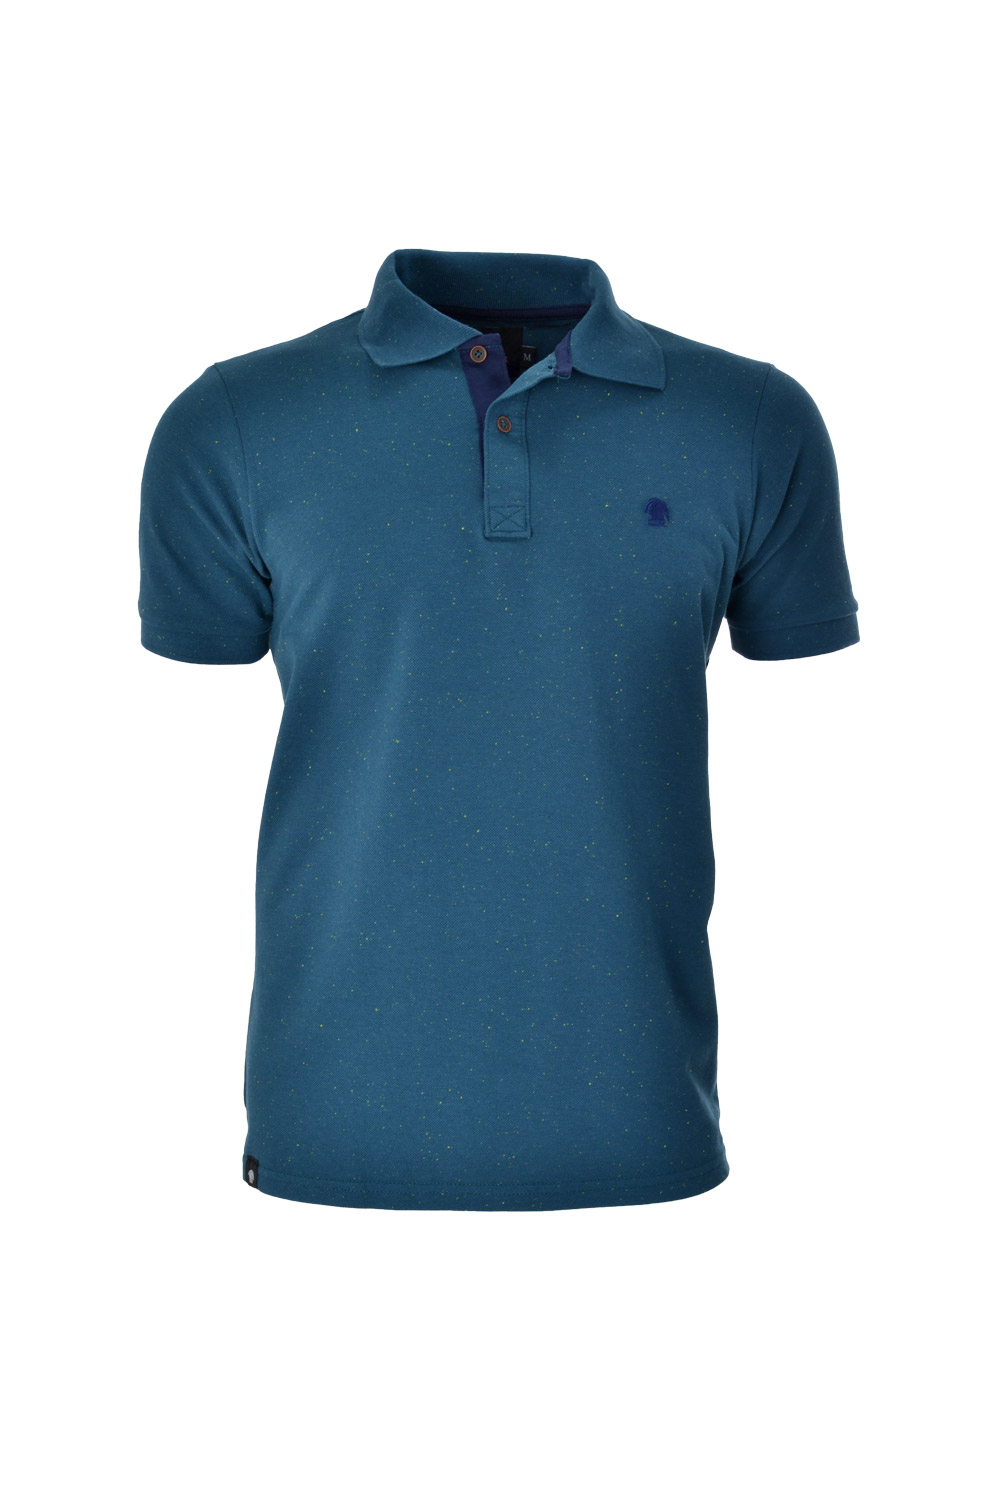 POLO MC BLUES ALGODAO FIO TINTO LISO KNOT